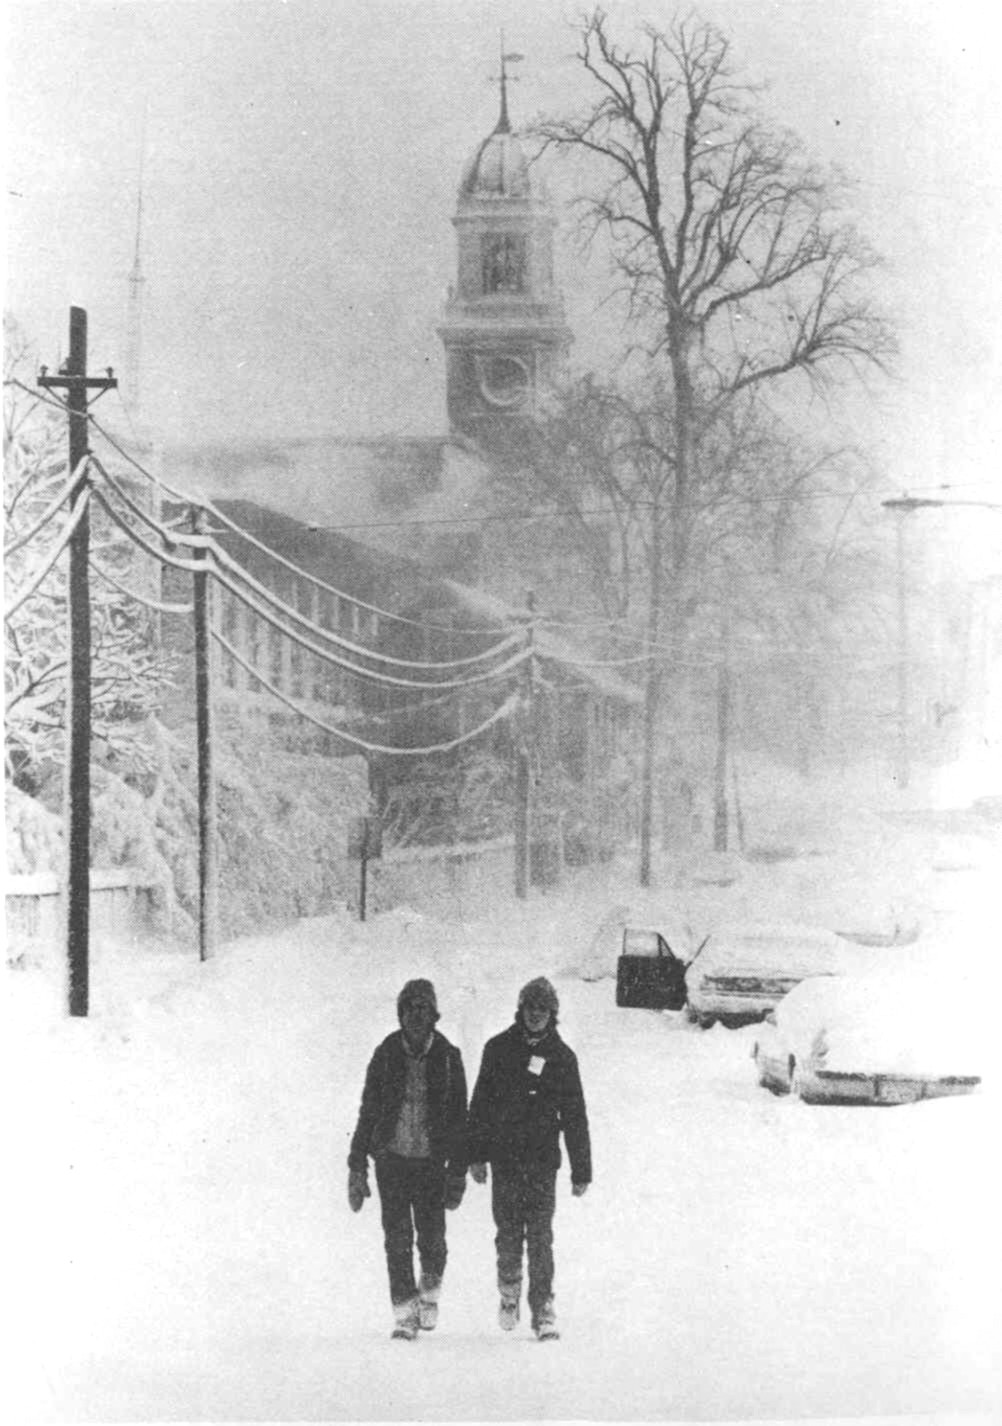 APPONAUG AT A STANDSTILL: By 4 p.m. on Feb. 6, 1978, the fast falling snow had brought commuter traffic to a halt.